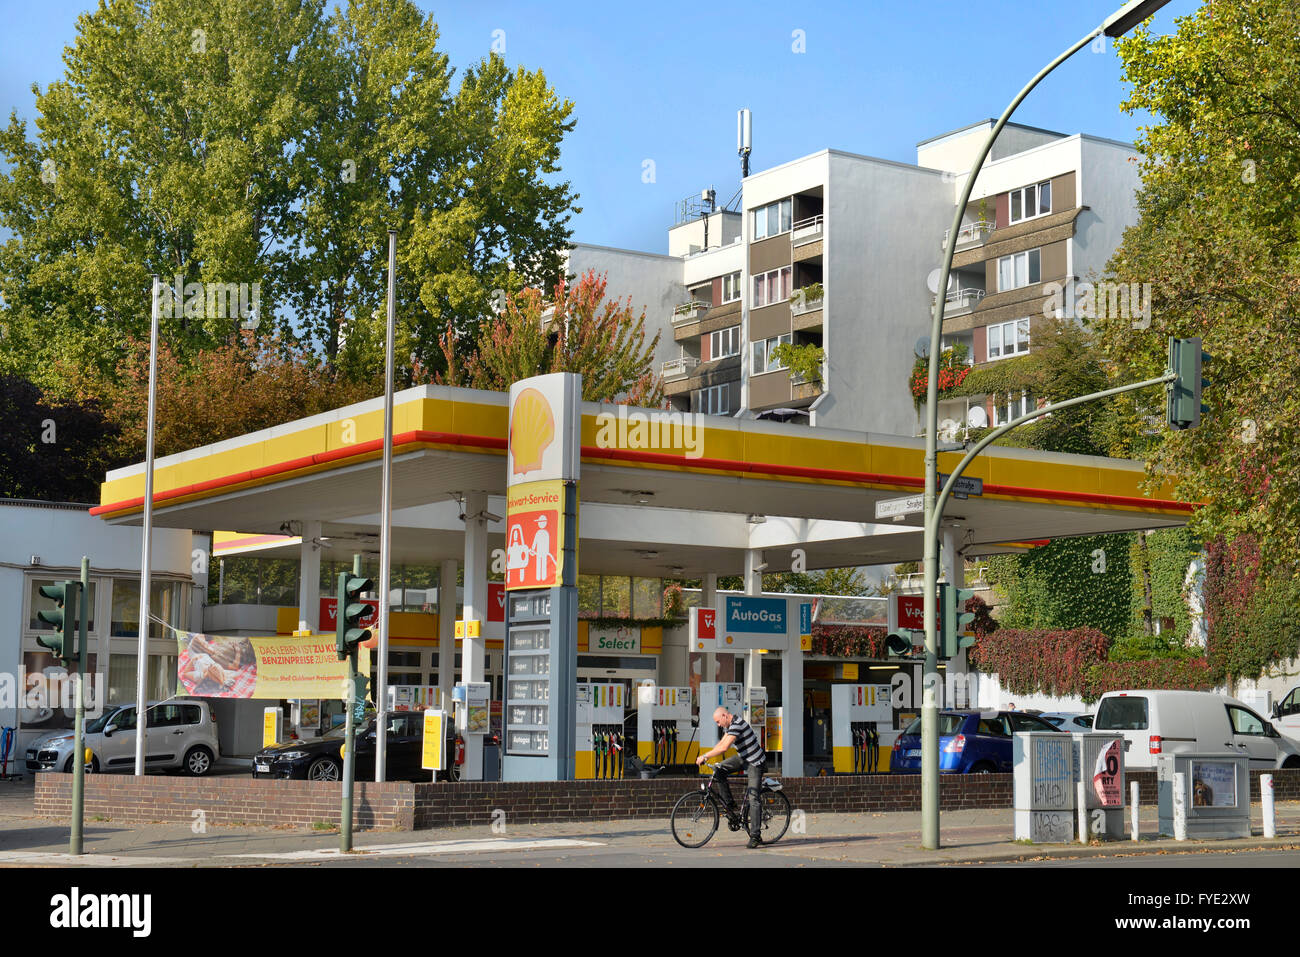 shell tankstelle stock photos shell tankstelle stock images alamy. Black Bedroom Furniture Sets. Home Design Ideas